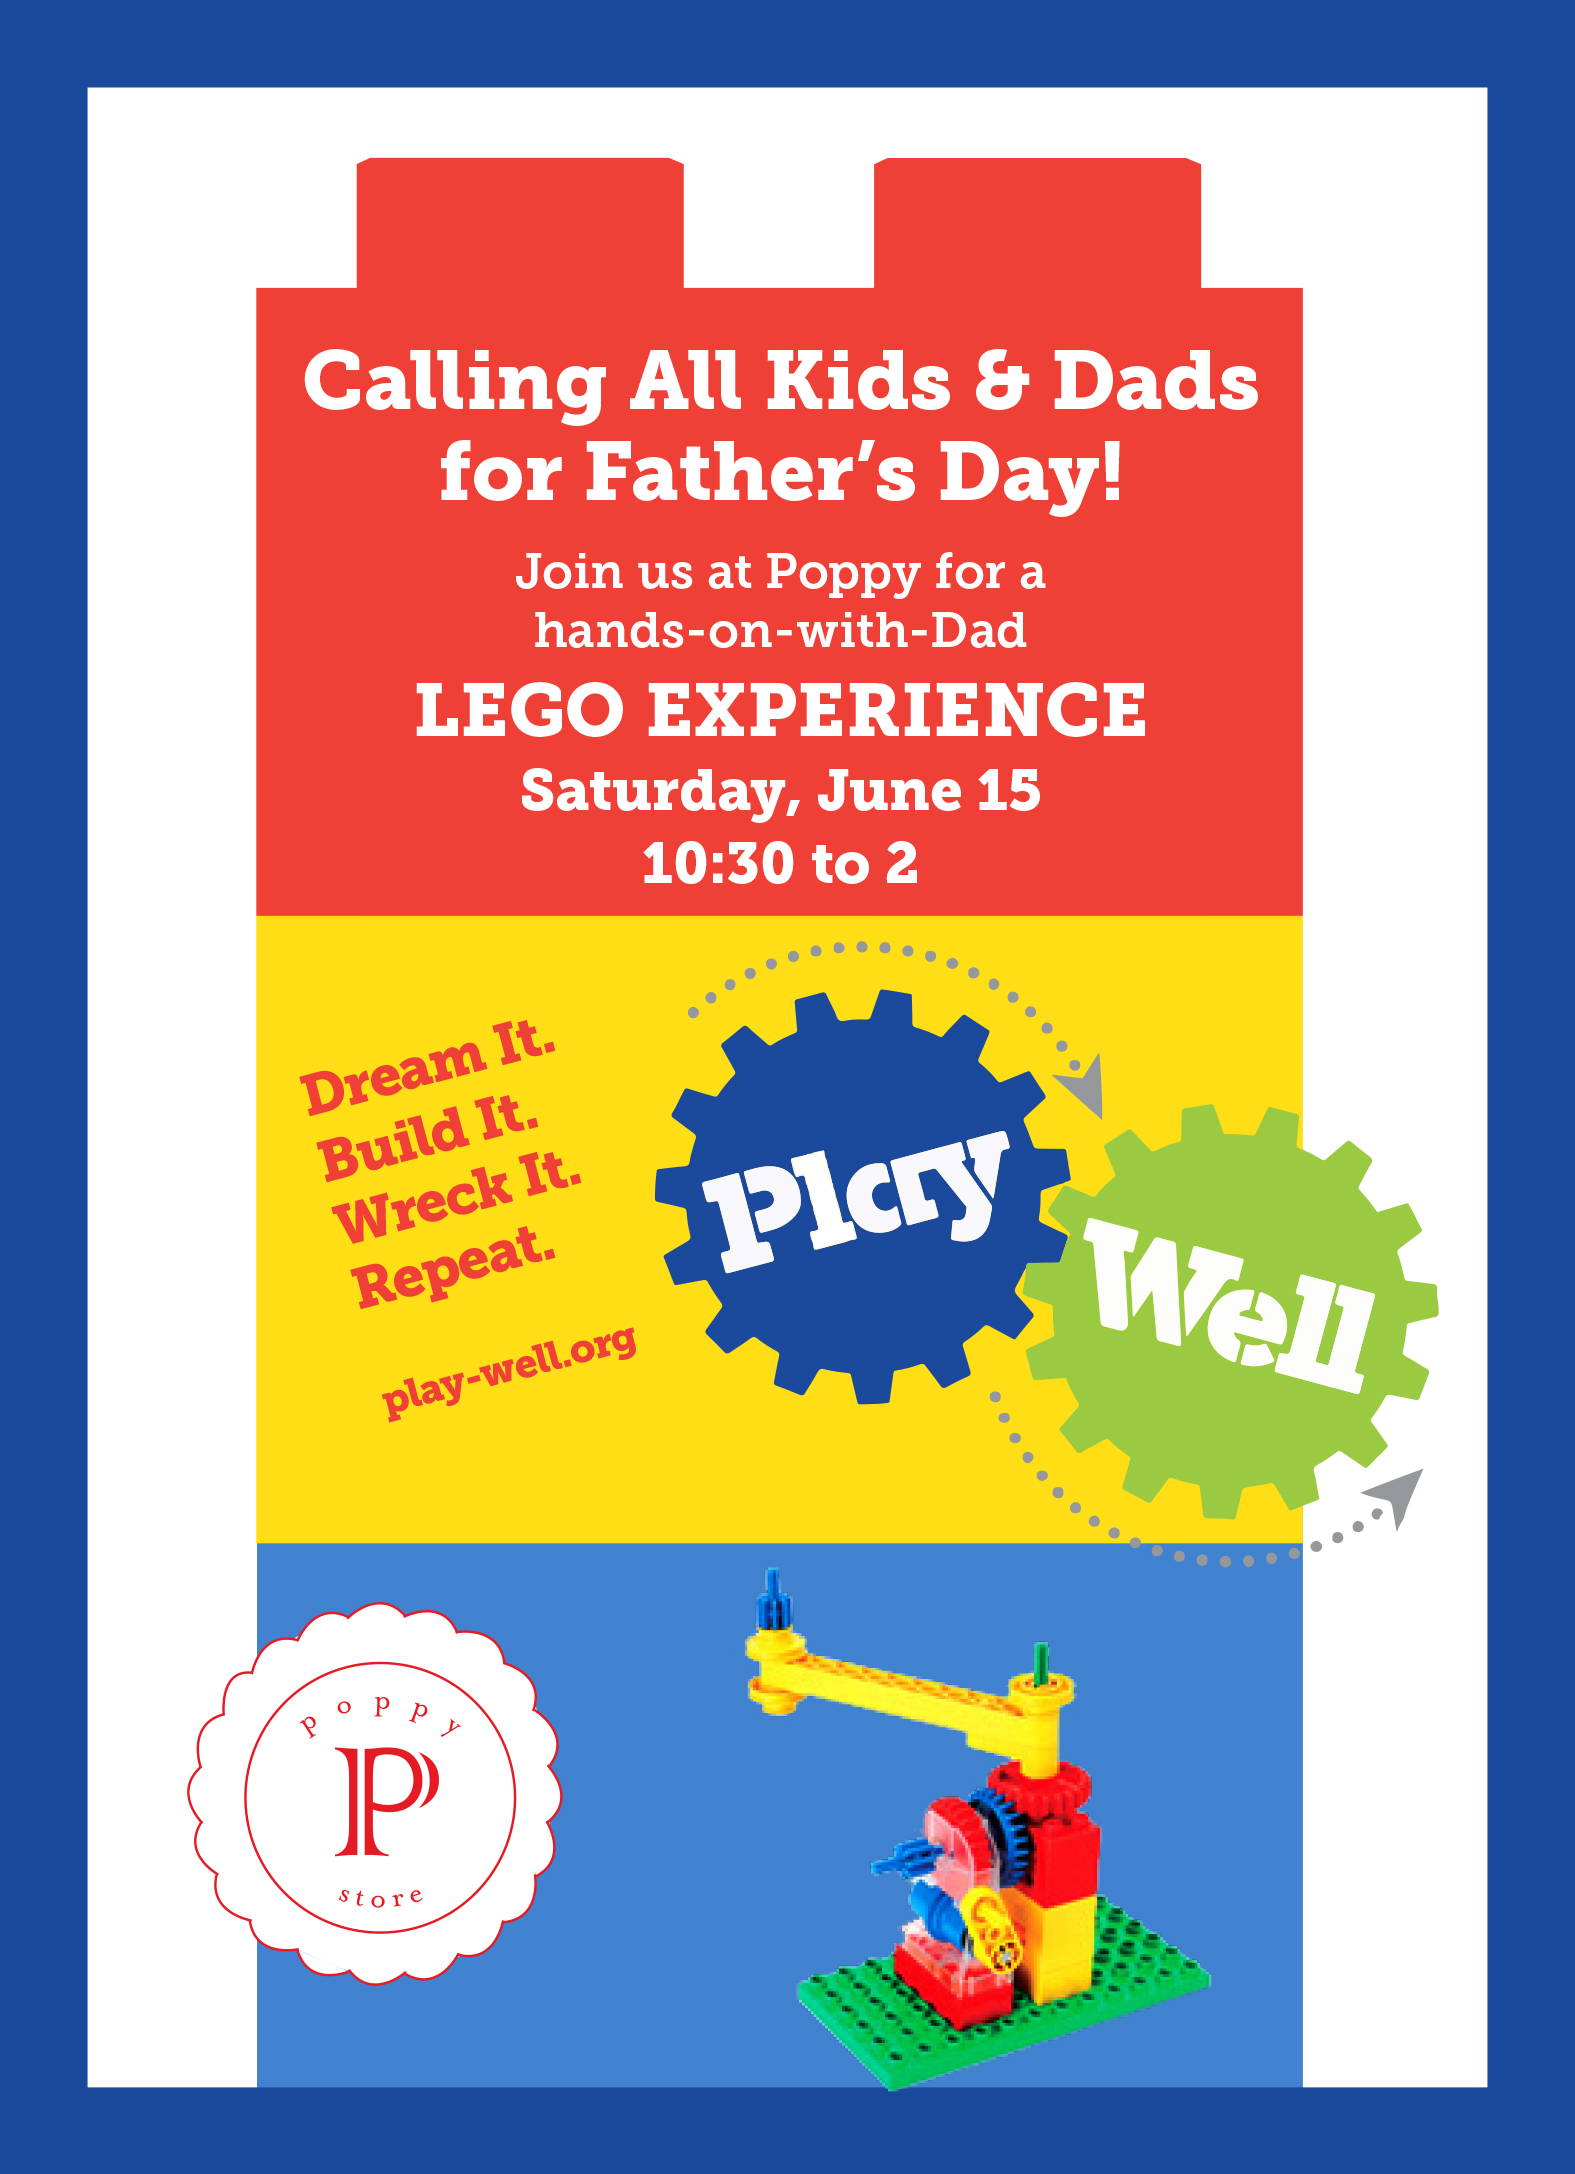 LEGO Experience - June 15, 10:30am-2pmHead over to Poppy for hands-on fun with Play-Well Legos with dad!